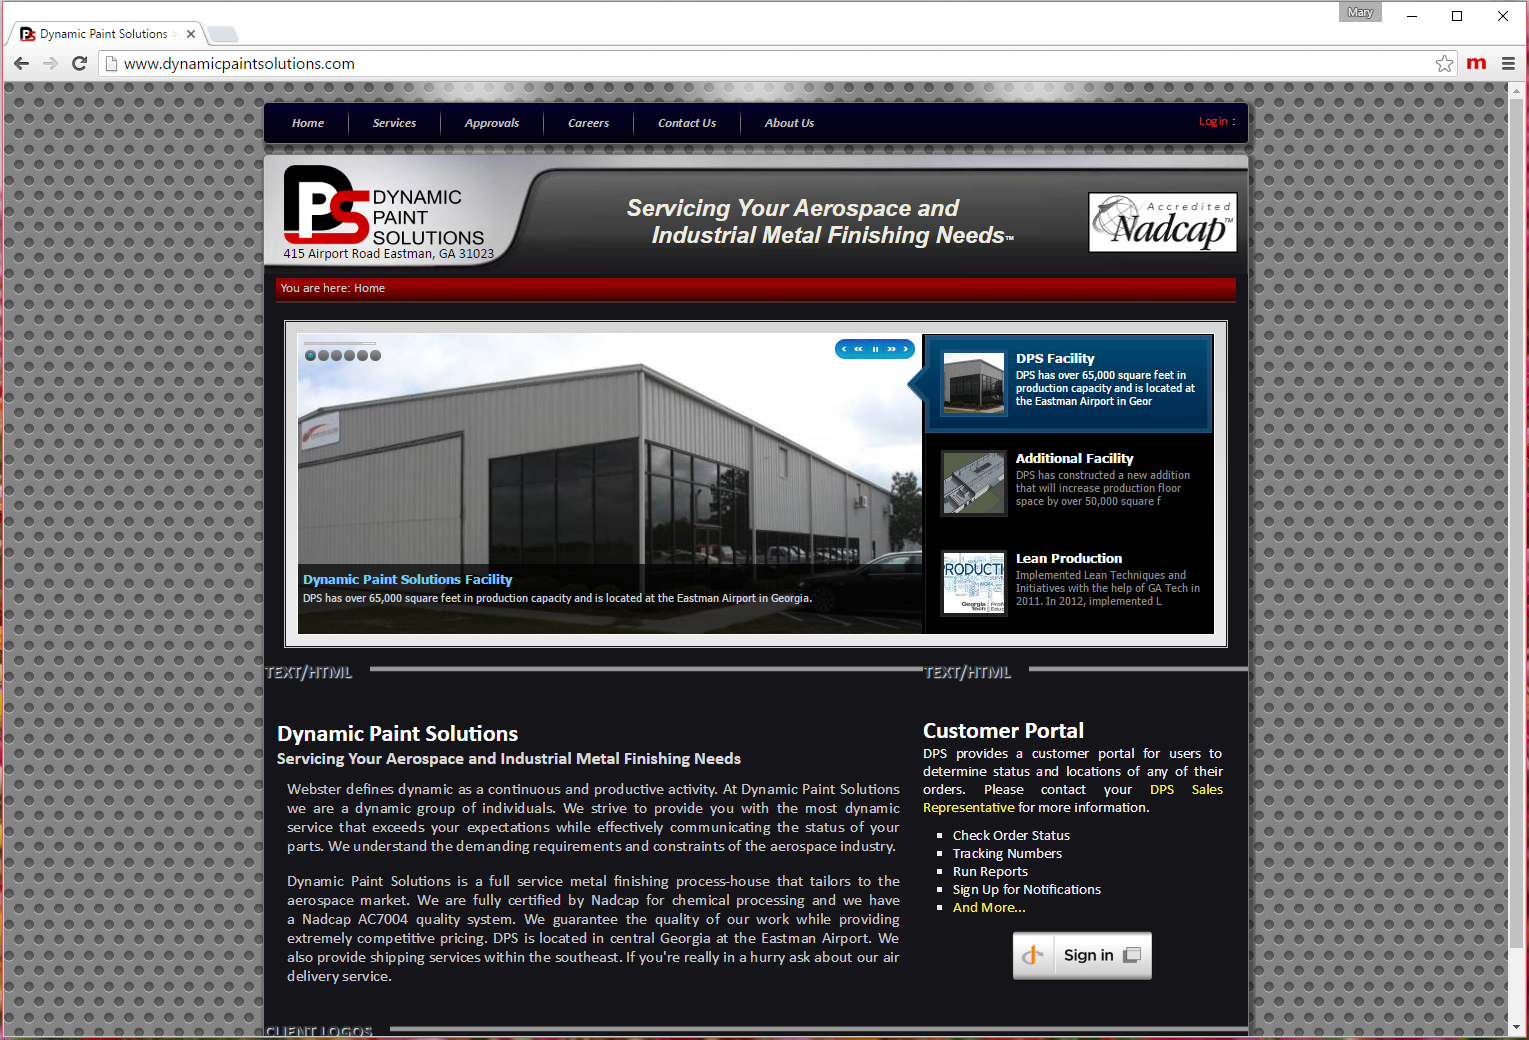 Dynamic Paint Solutions site